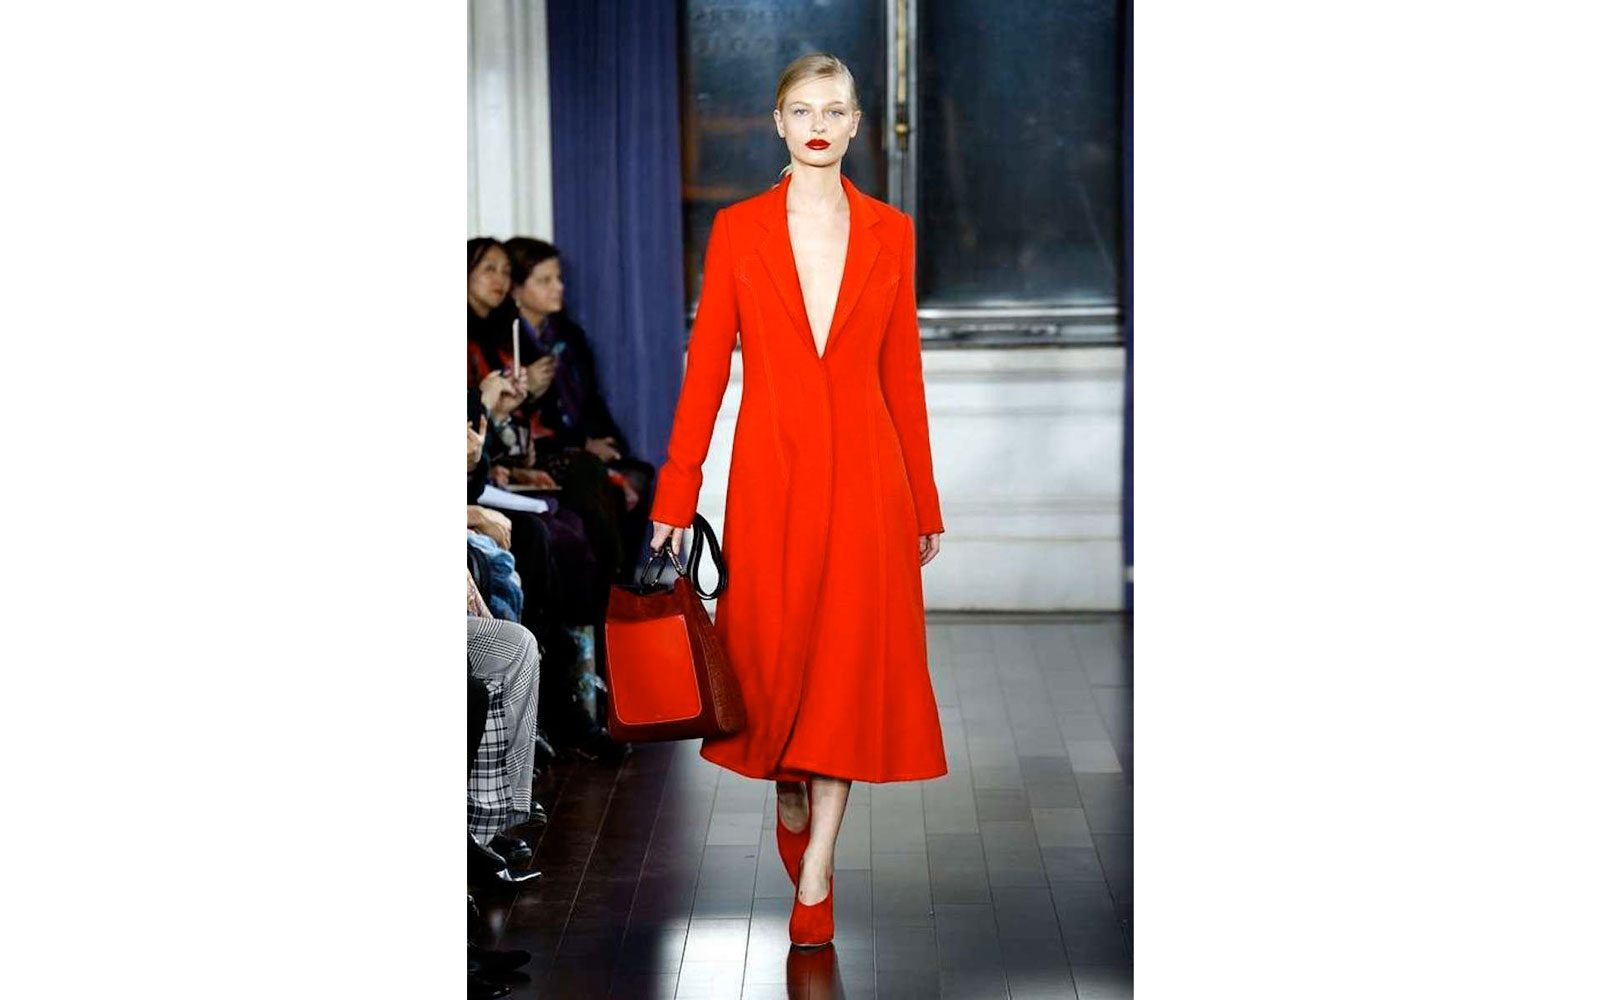 Grenadine – Jason Wu